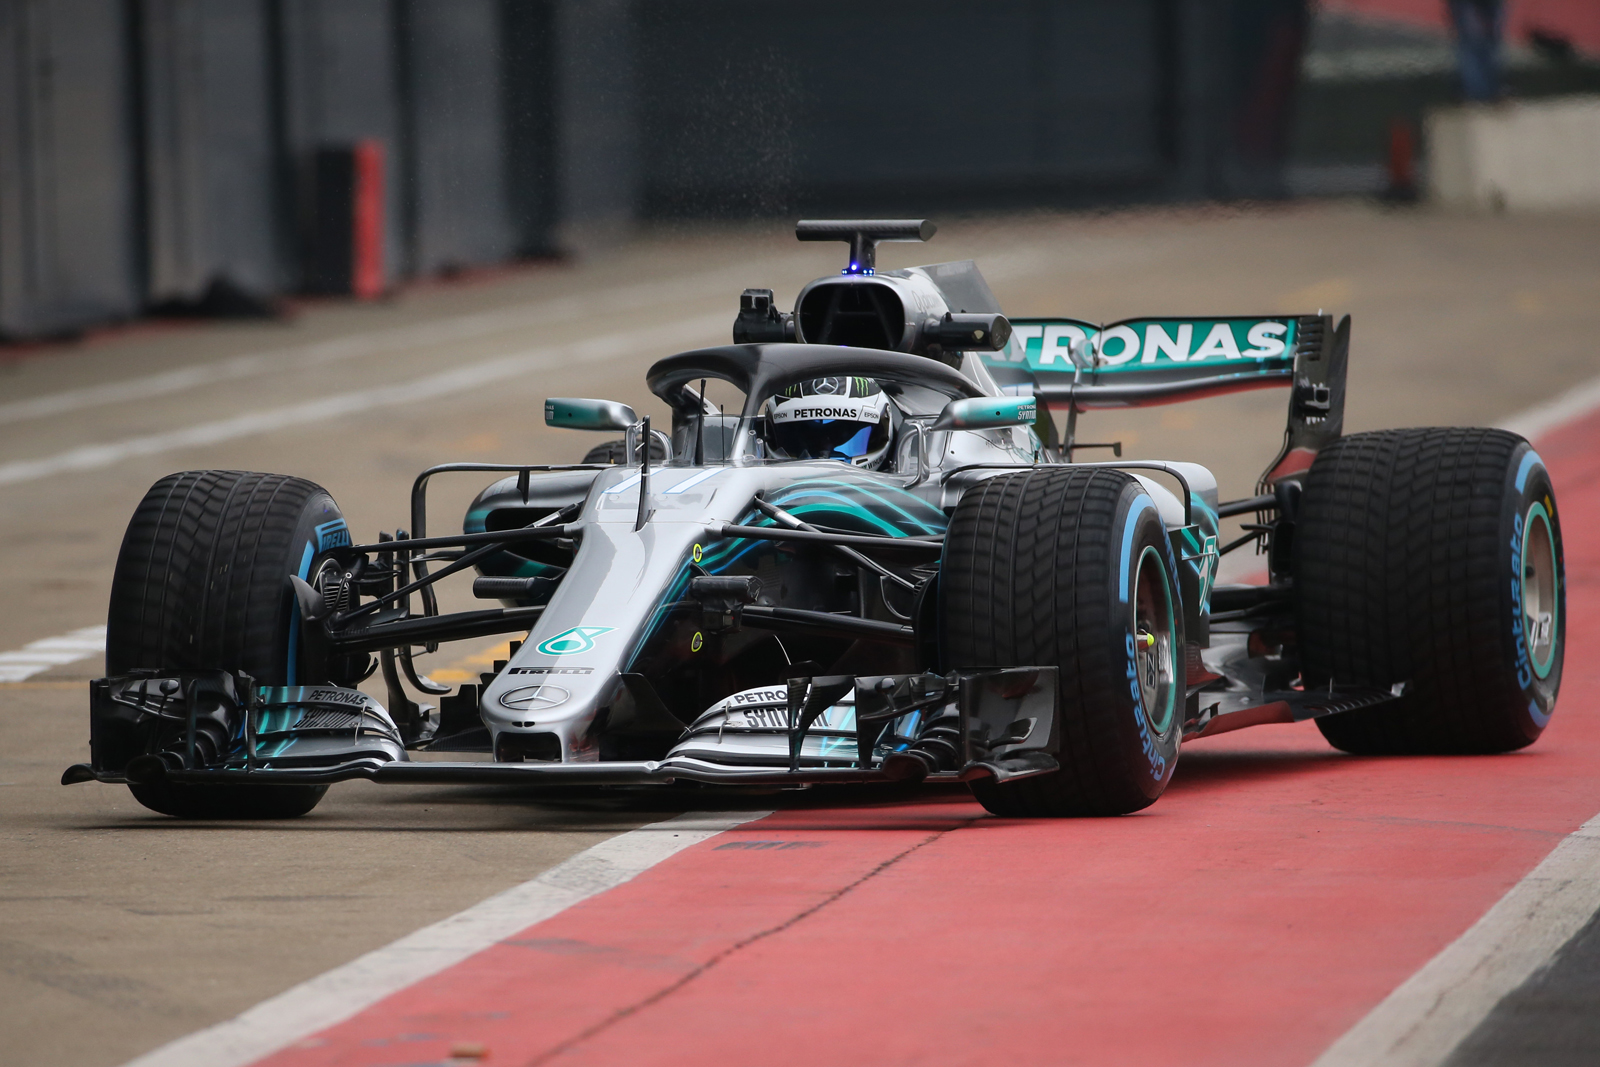 The Latest Mercedes Amg F1 Car Looks Absolutely Bonkers Autoguide